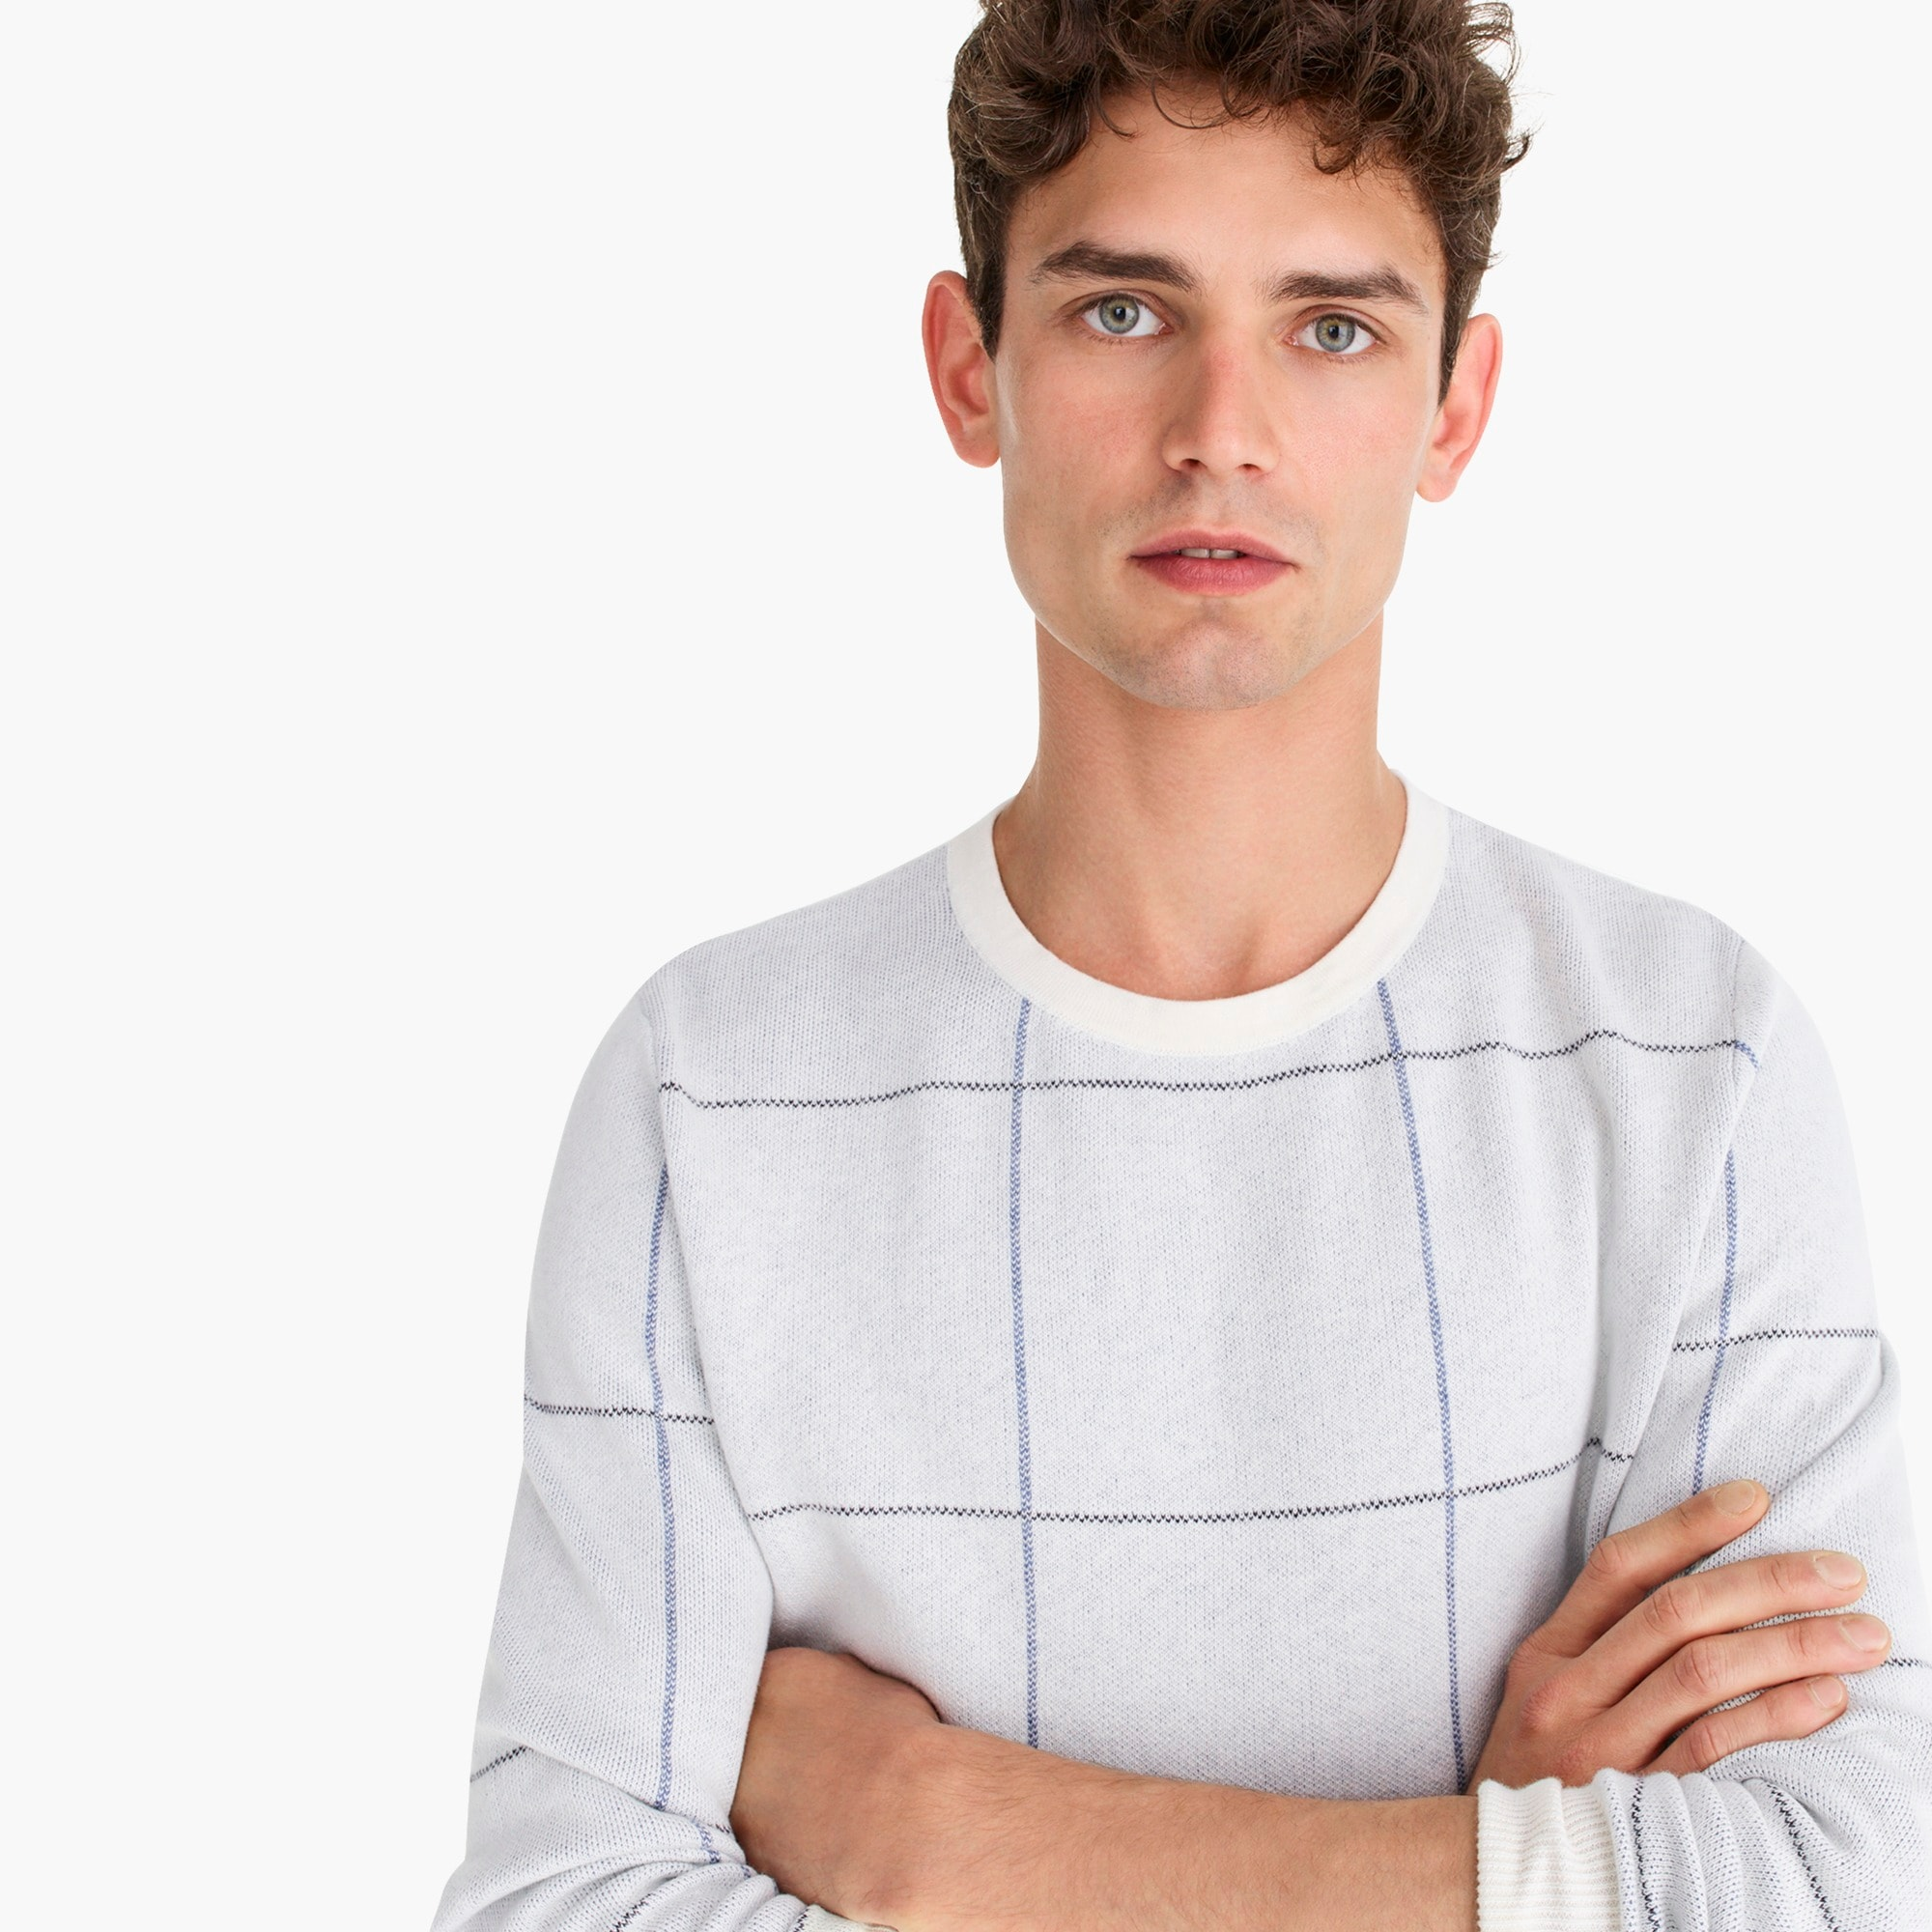 Image 4 for Cotton-cashmere two-color crewneck sweater in windowpane